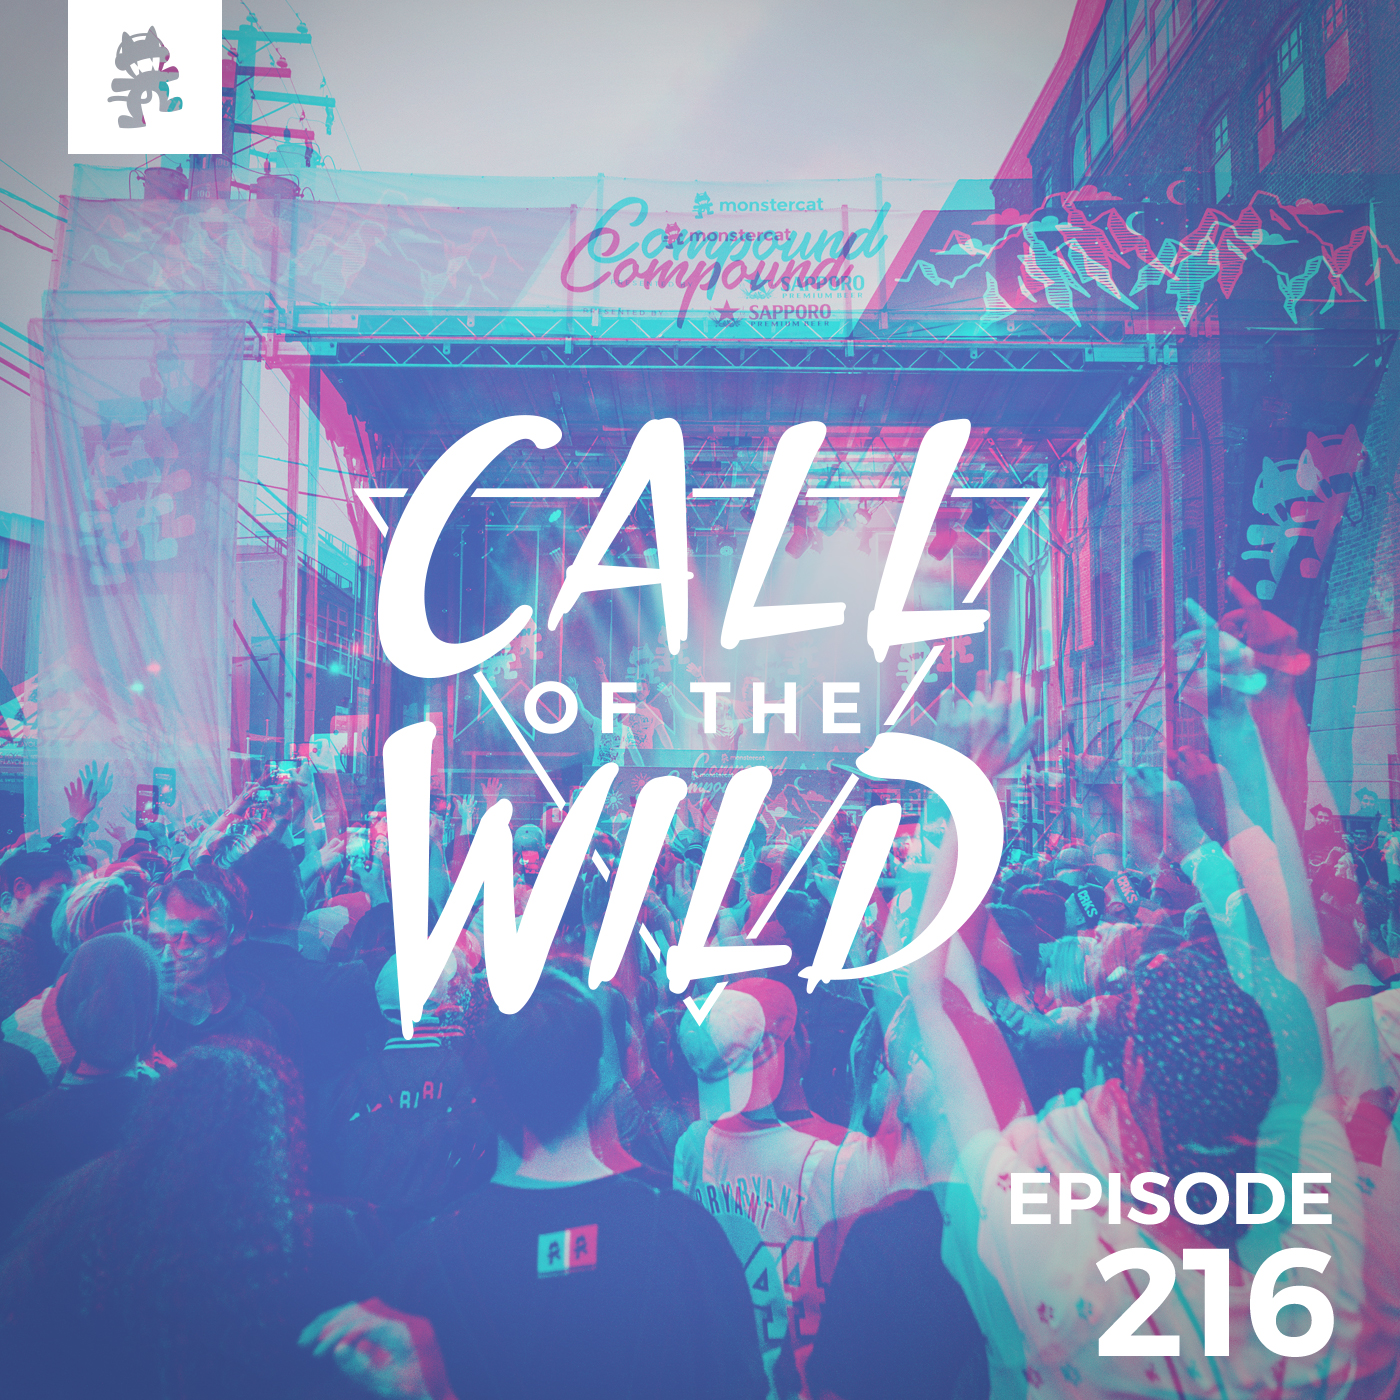 Monstercat: Call of the Wild - Episode 216